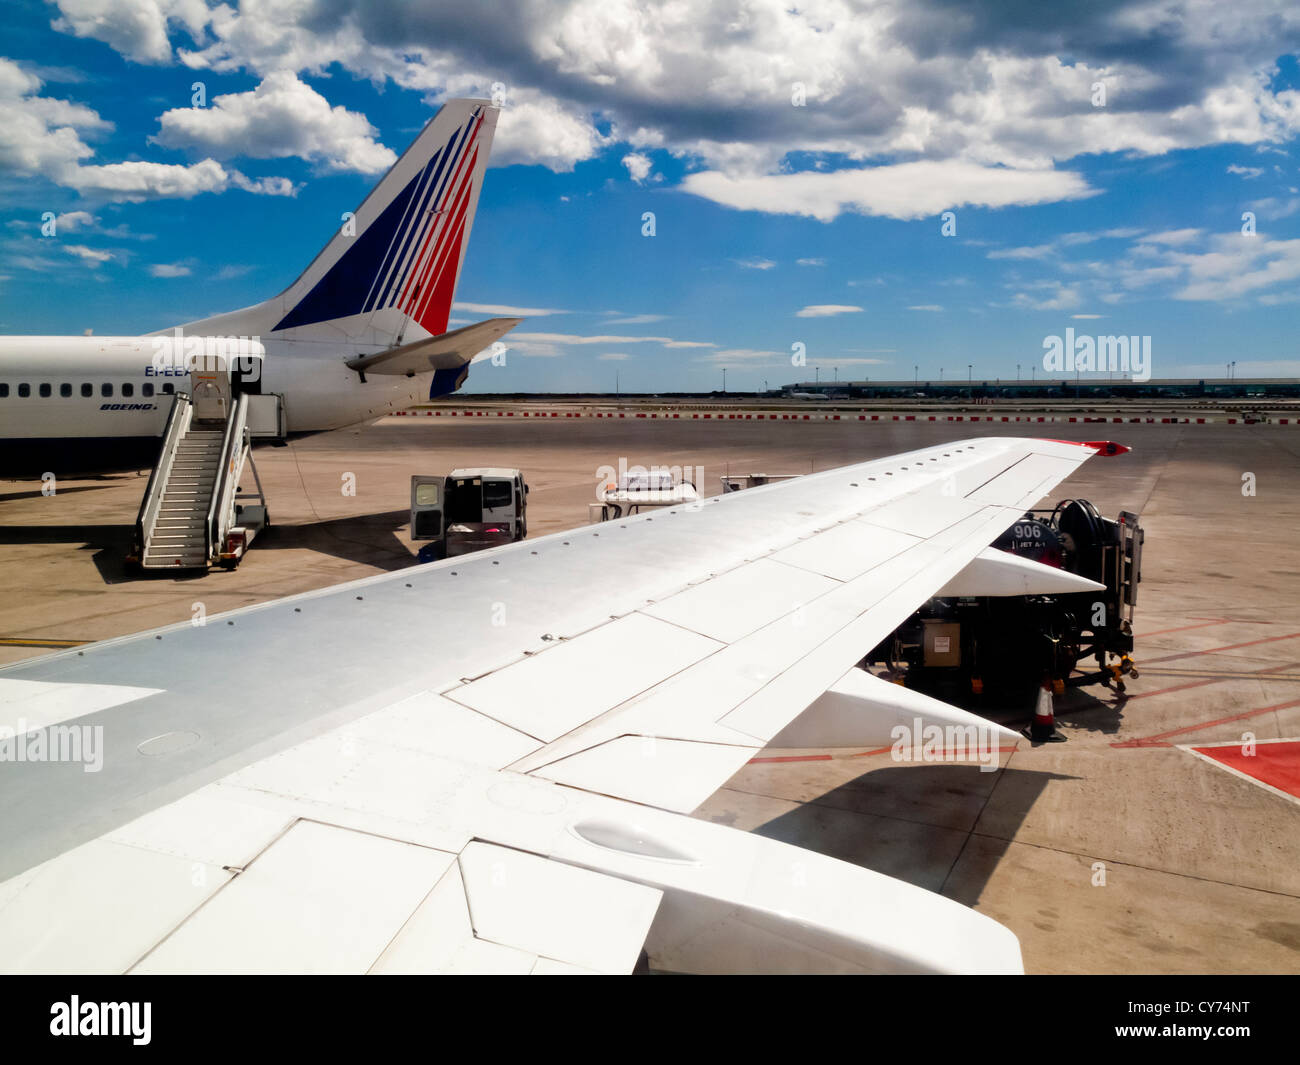 View of passenger aircraft on the ground after landing at Barcelona airport in Spain - Stock Image